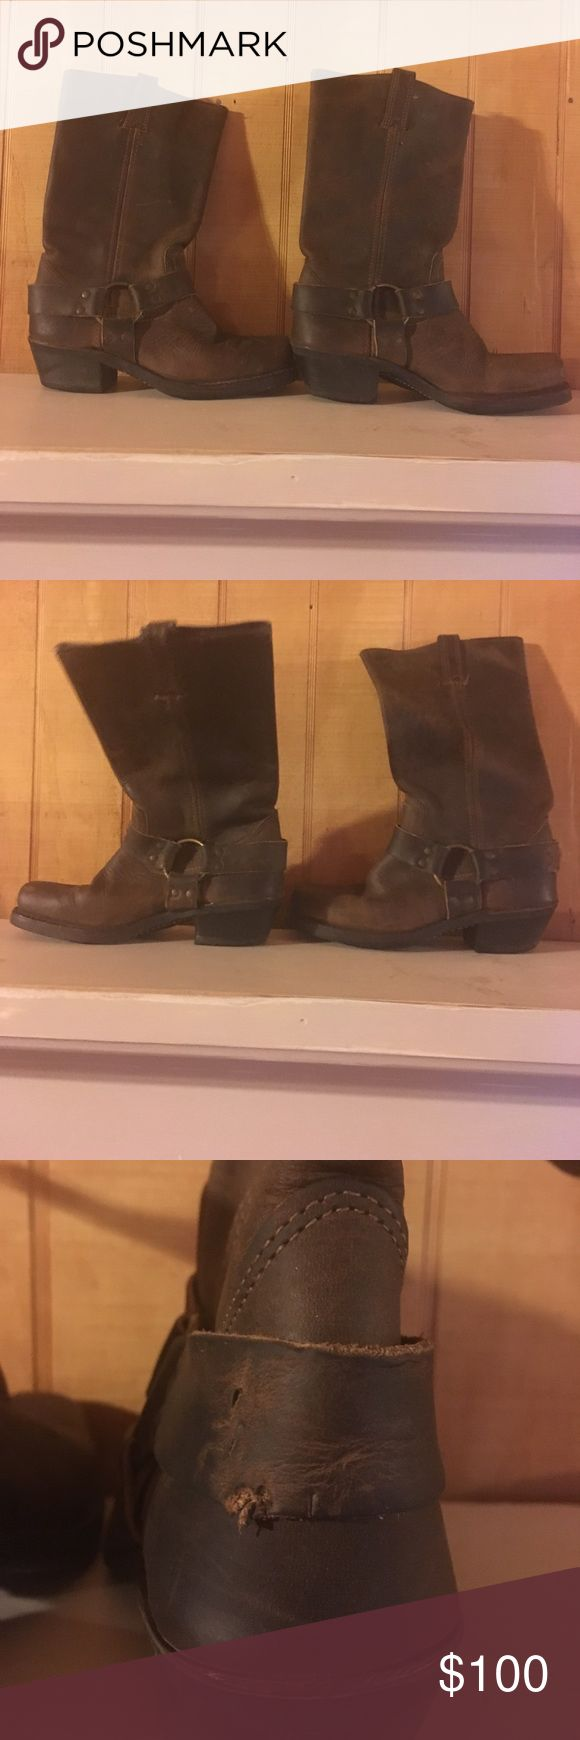 Frye boots Frye boots very comfy and soft leather have several imperfections please see photos. These still have lots of life left in them. I would keep them but they are not my size. Please don't hesitate to ask any questions. Frye Shoes Winter & Rain Boots